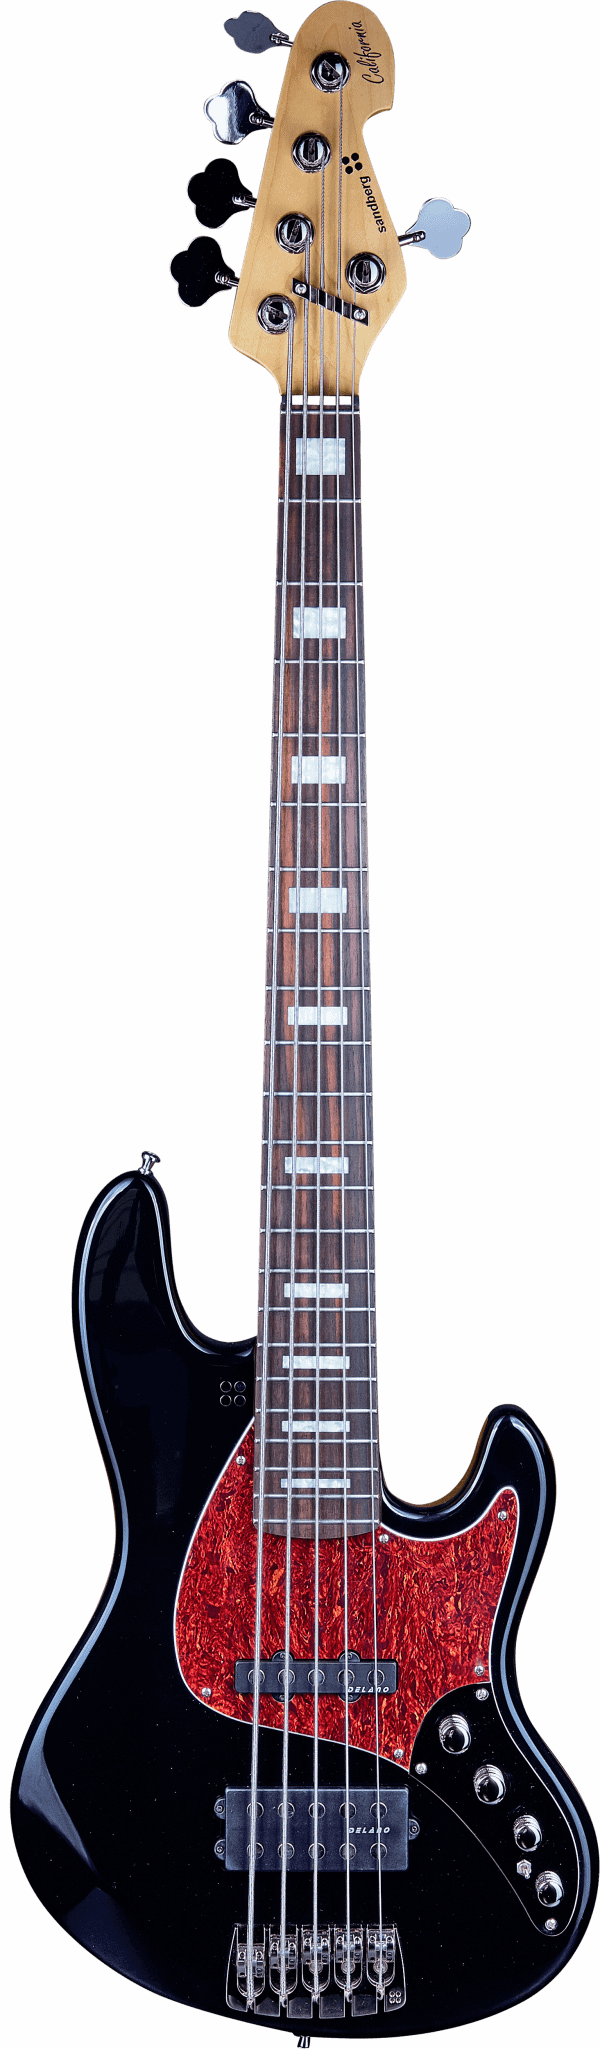 Sandberg TM5 Black High Gloss